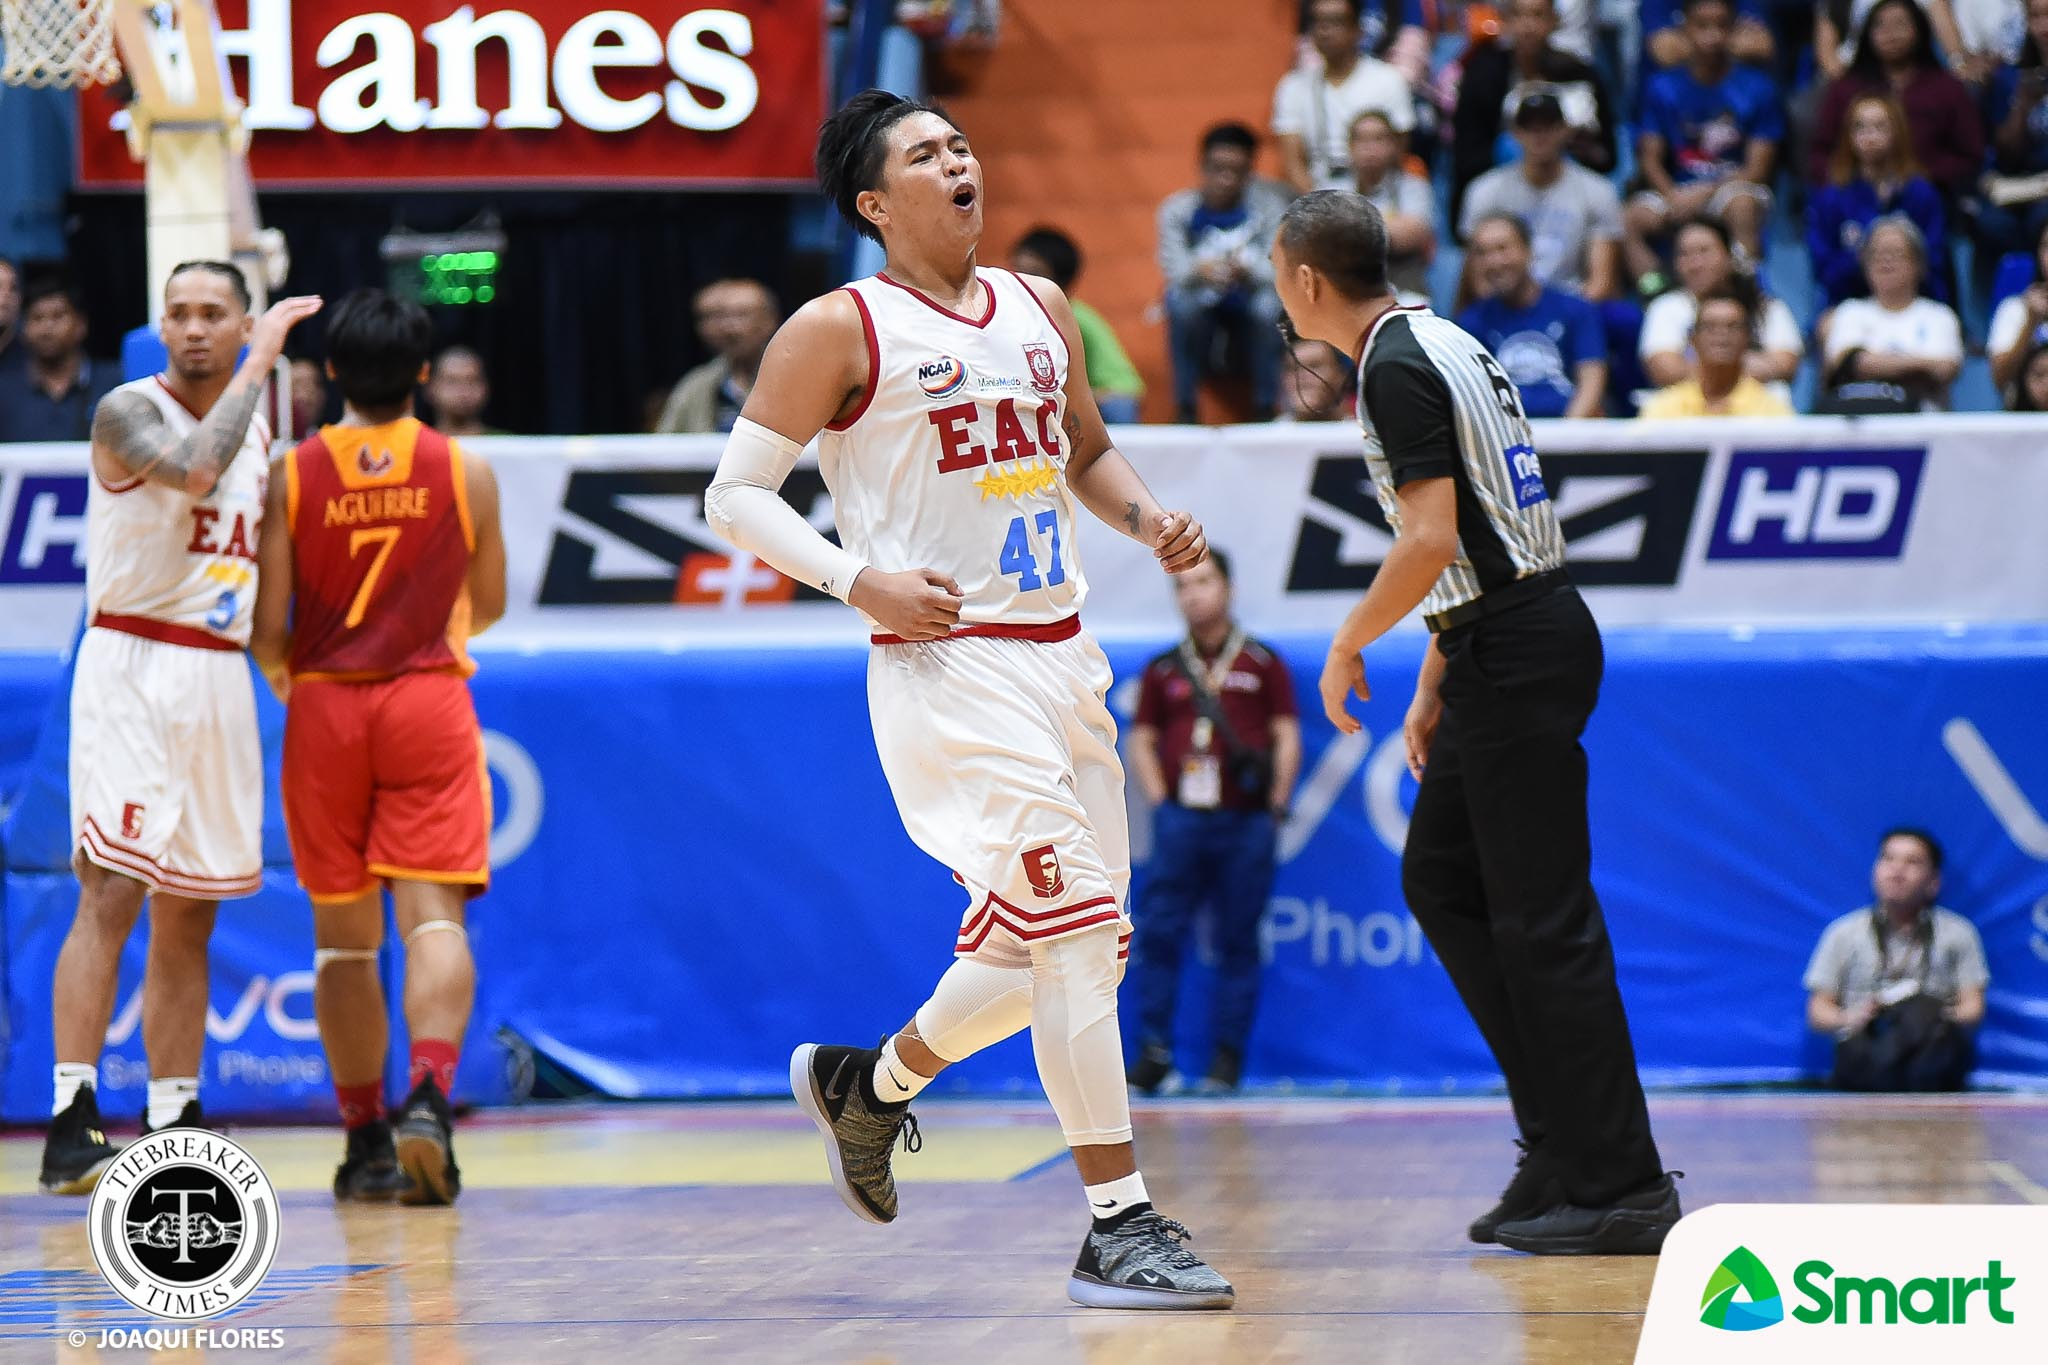 Tiebreaker Times Back-to-back for EAC as Mapua continues slide Basketball EAC MIT NCAA News  Warren Bonifacio Noah Lugo NCAA Season 94 Seniors Basketball NCAA Season 94 Mapua Seniors Basketball Juju Bautista Jerome Garcia Jan Natividdad Hamadou Laminou EAC Seniors Basketball CJ Cadua Atoy Co Ariel Sison